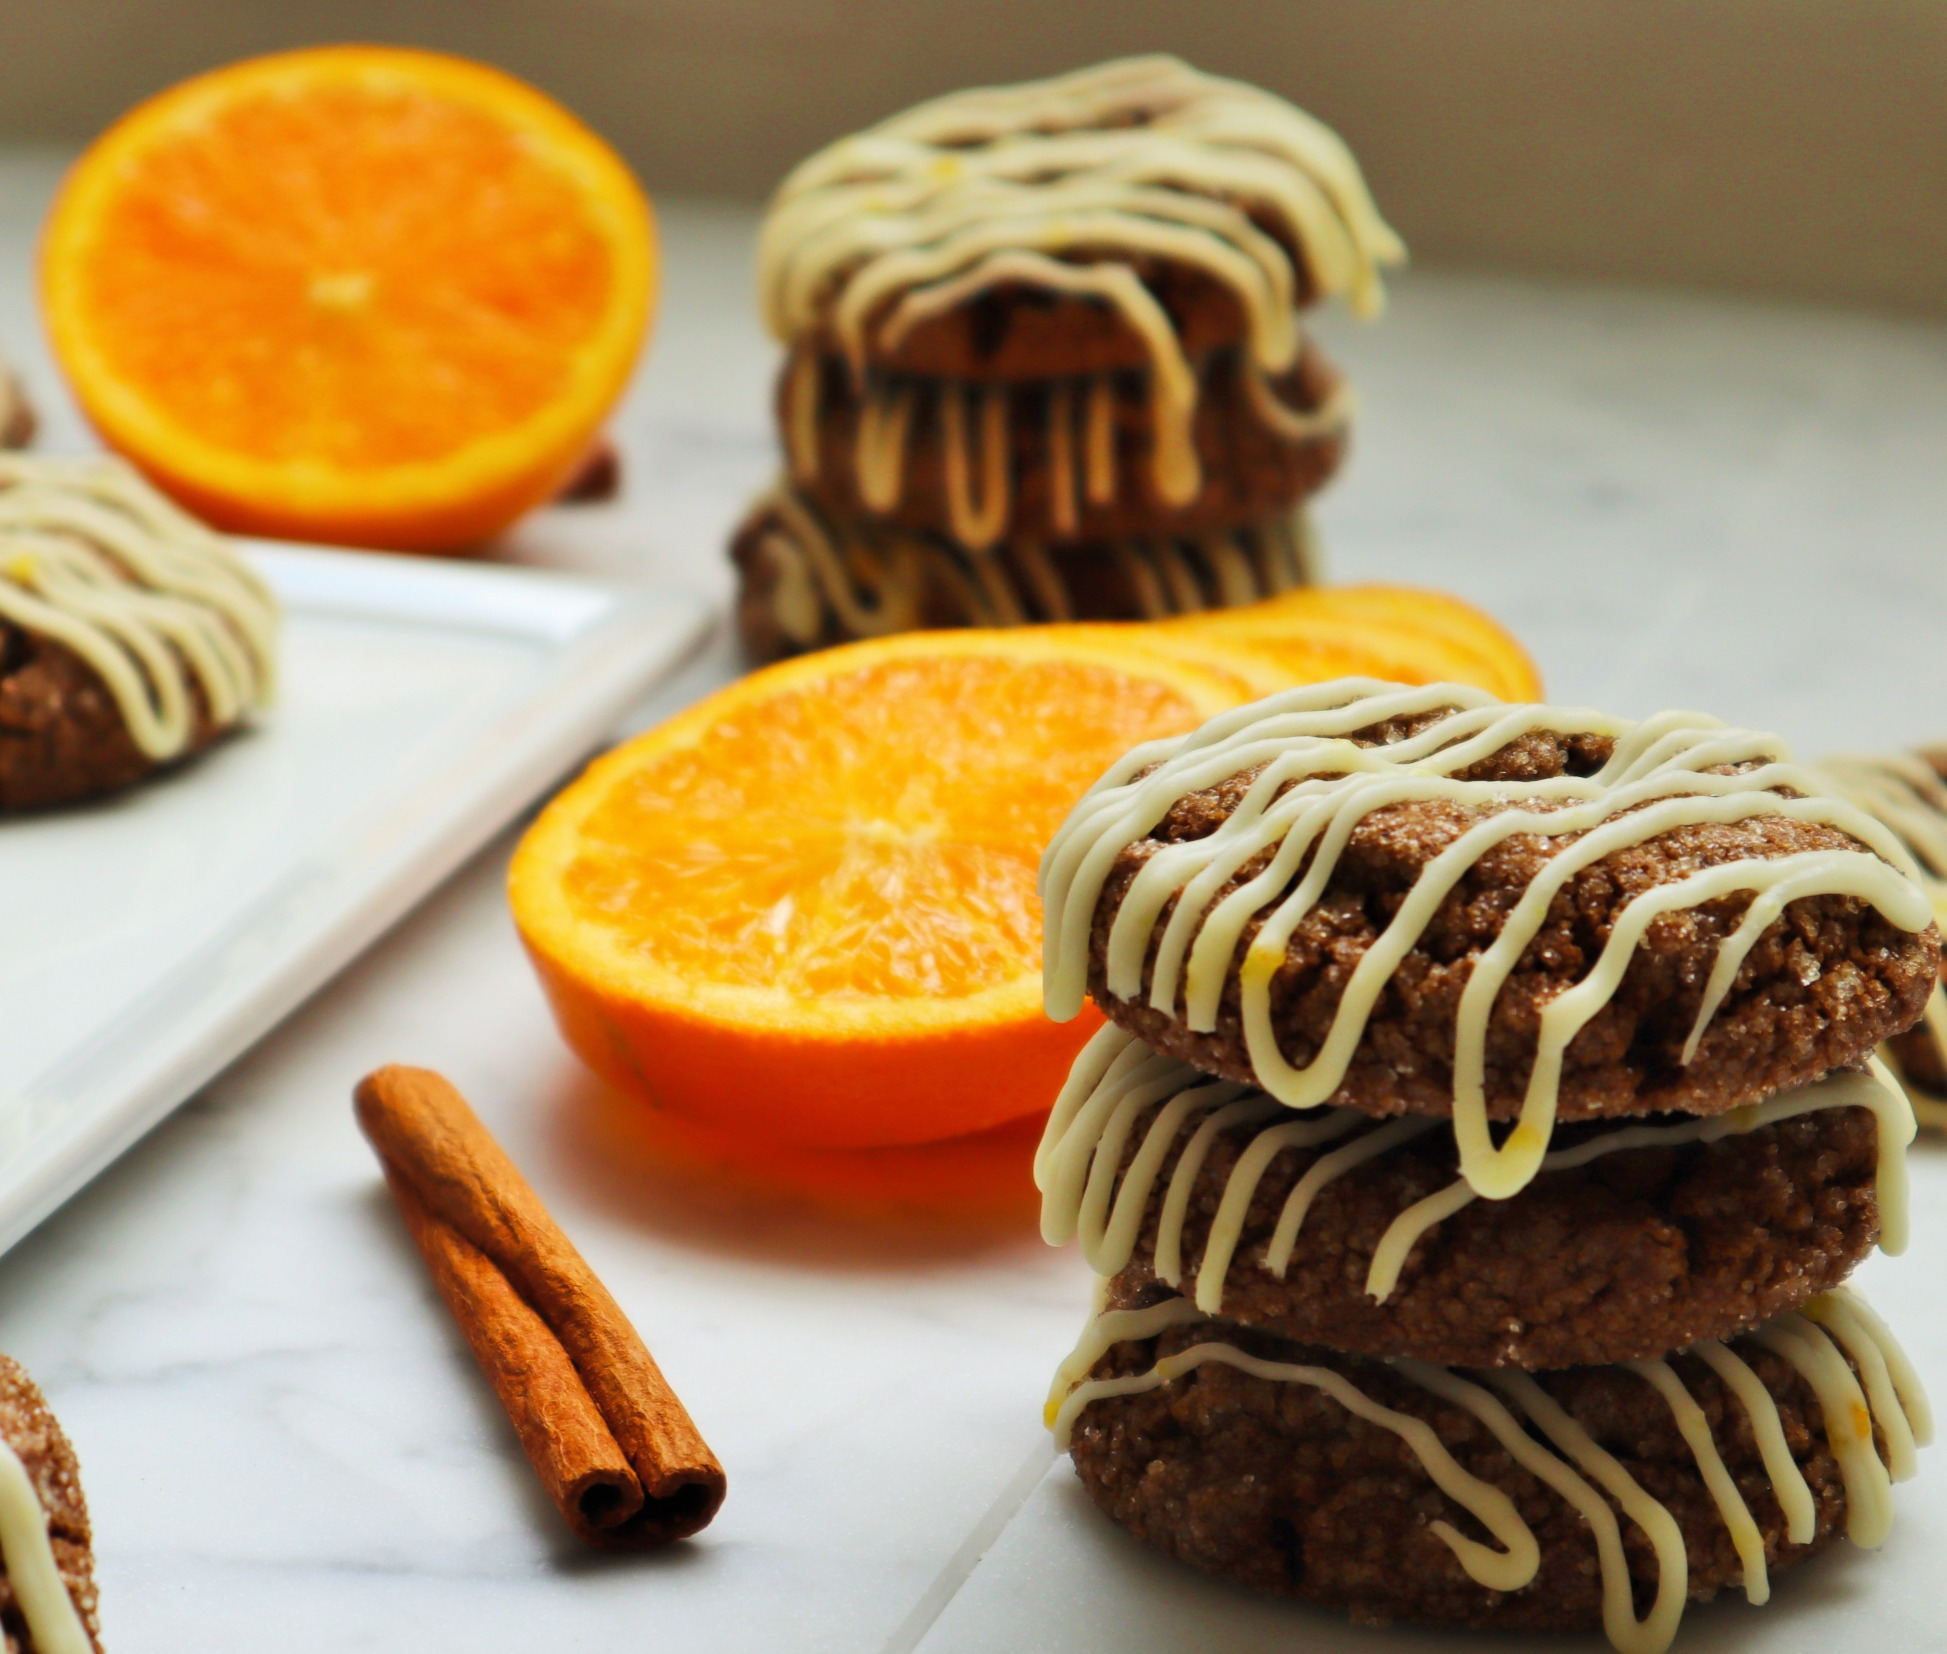 Orange Zest Ginger Molasses Cookie $1.89 ea